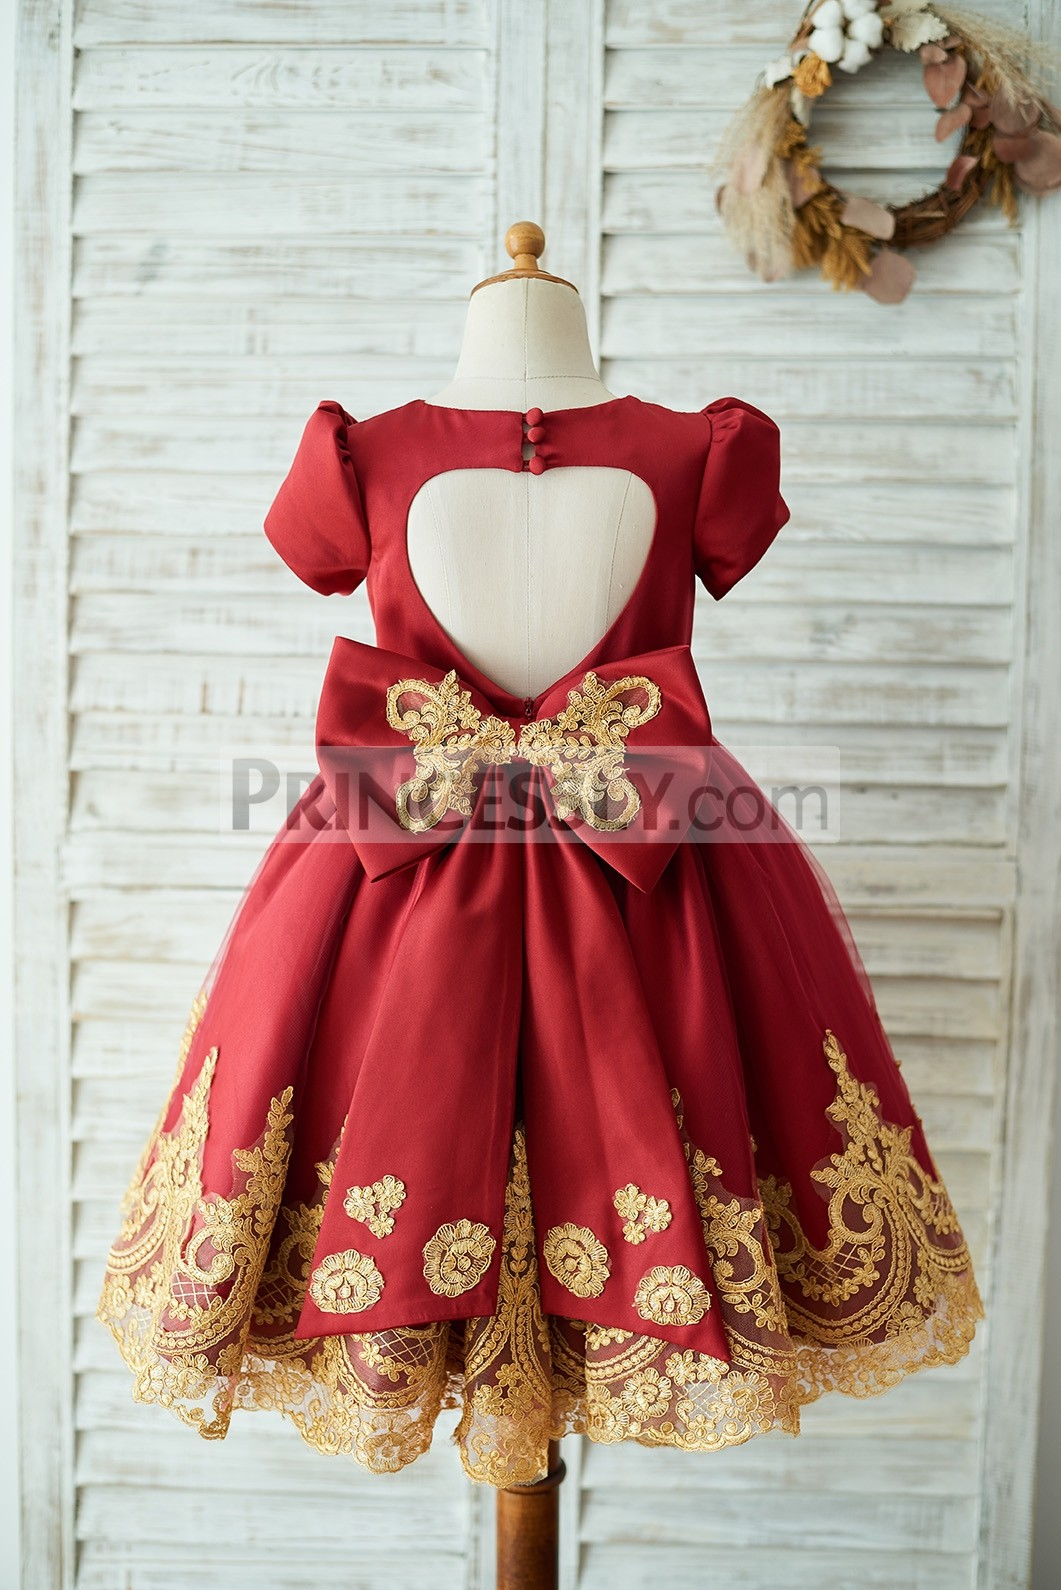 Keyhole satin tulle red wedding party little girl dress